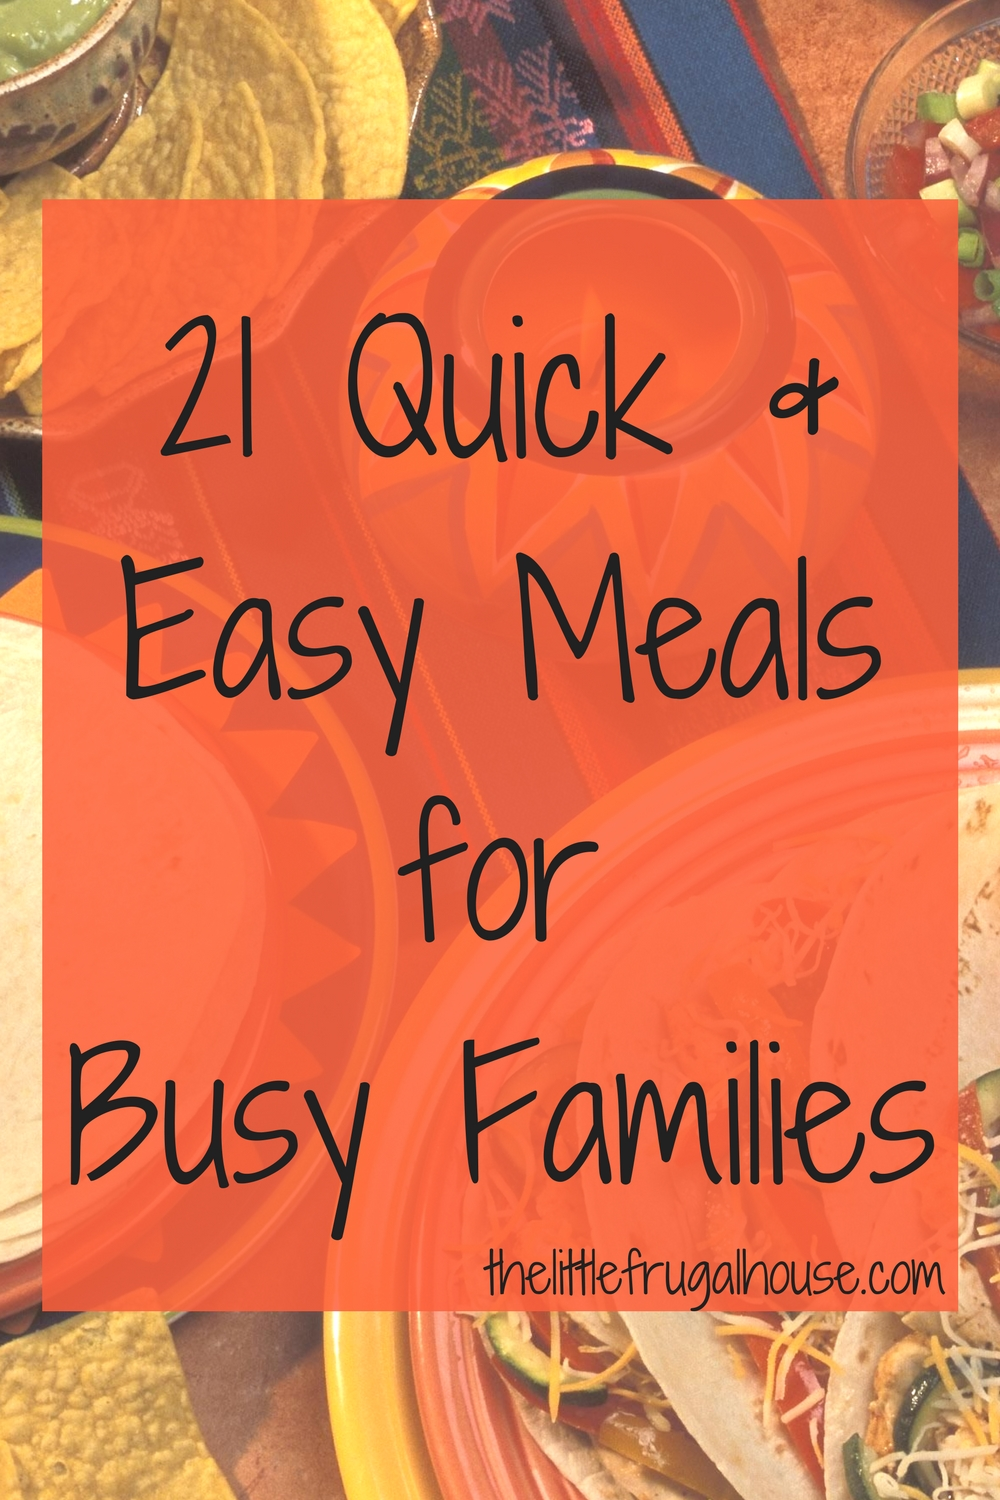 21 Quick, Easy & Simple Meals For Busy Families